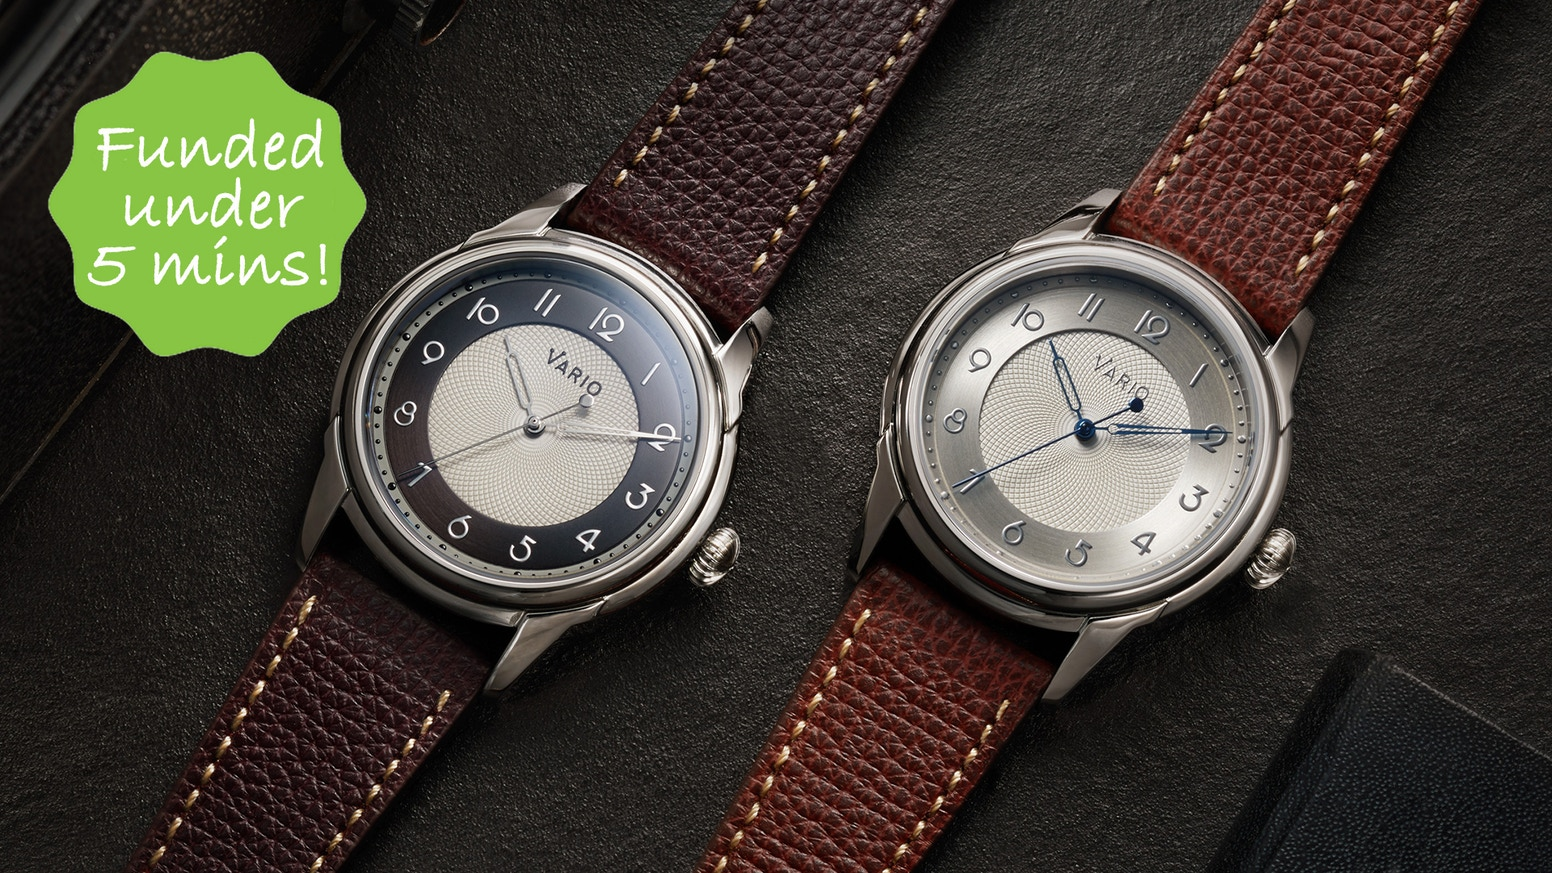 Vario's 2nd watch collection inspired by Art Deco period